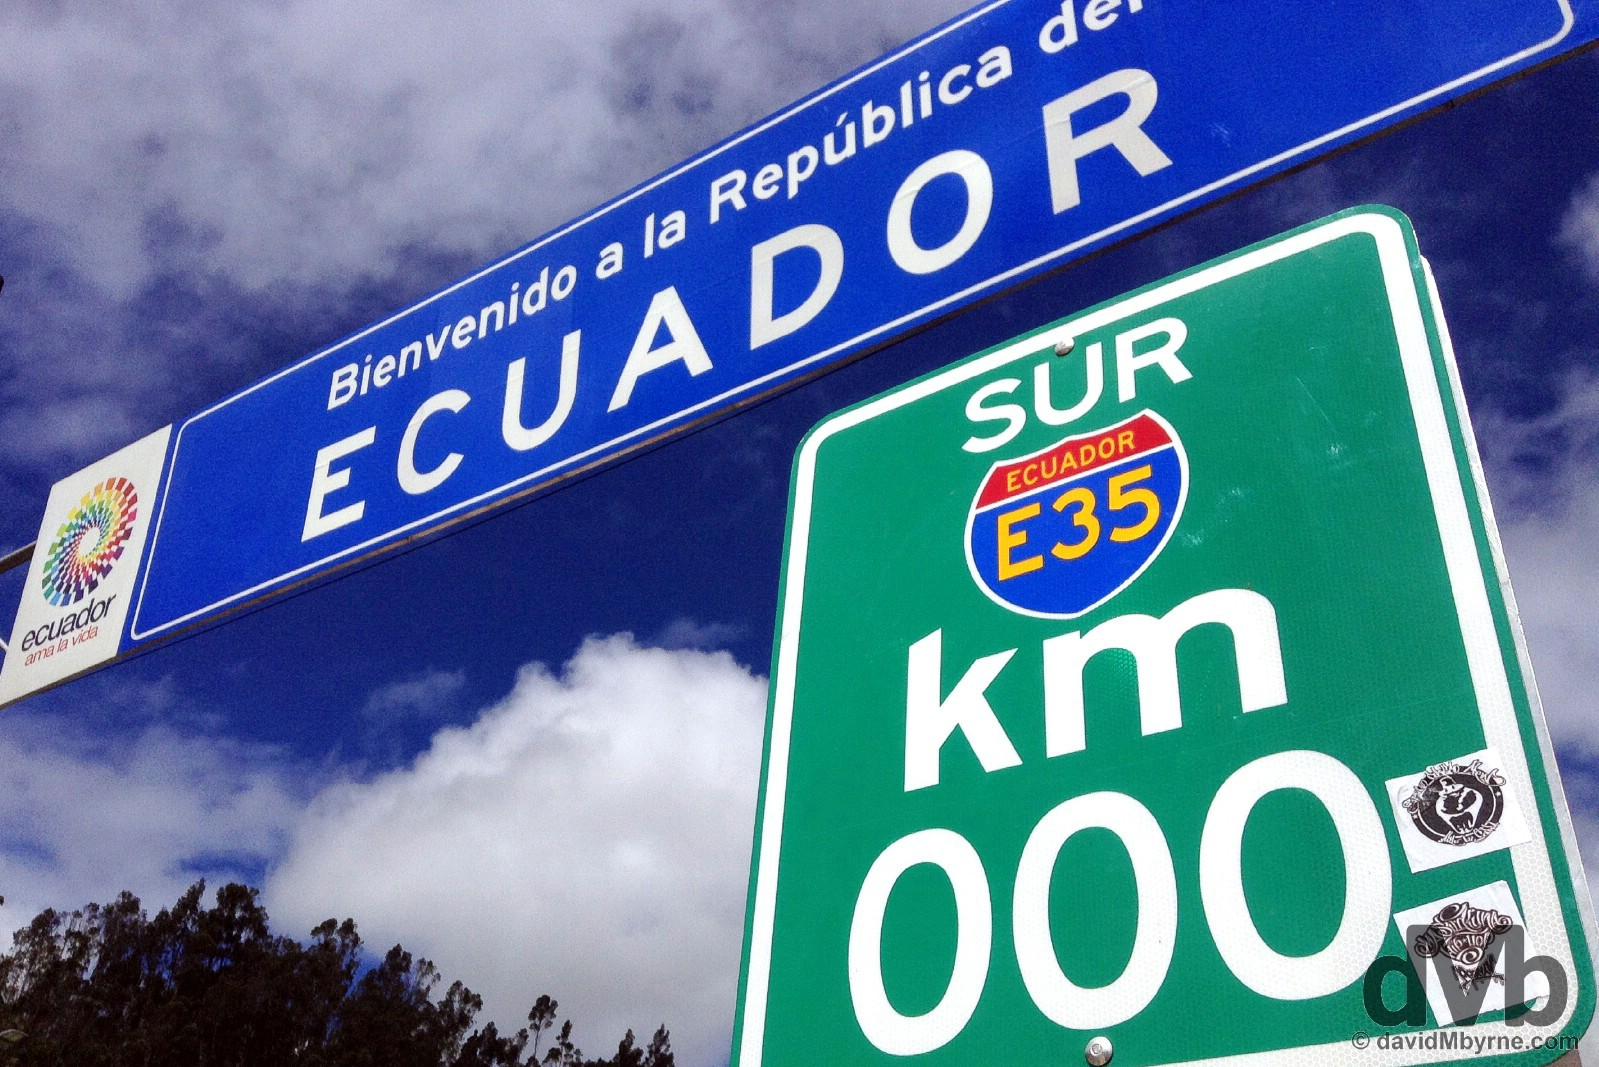 Entering Ecuador at the Rumichaca bridge border crossing with Colombia. July 2, 2105.